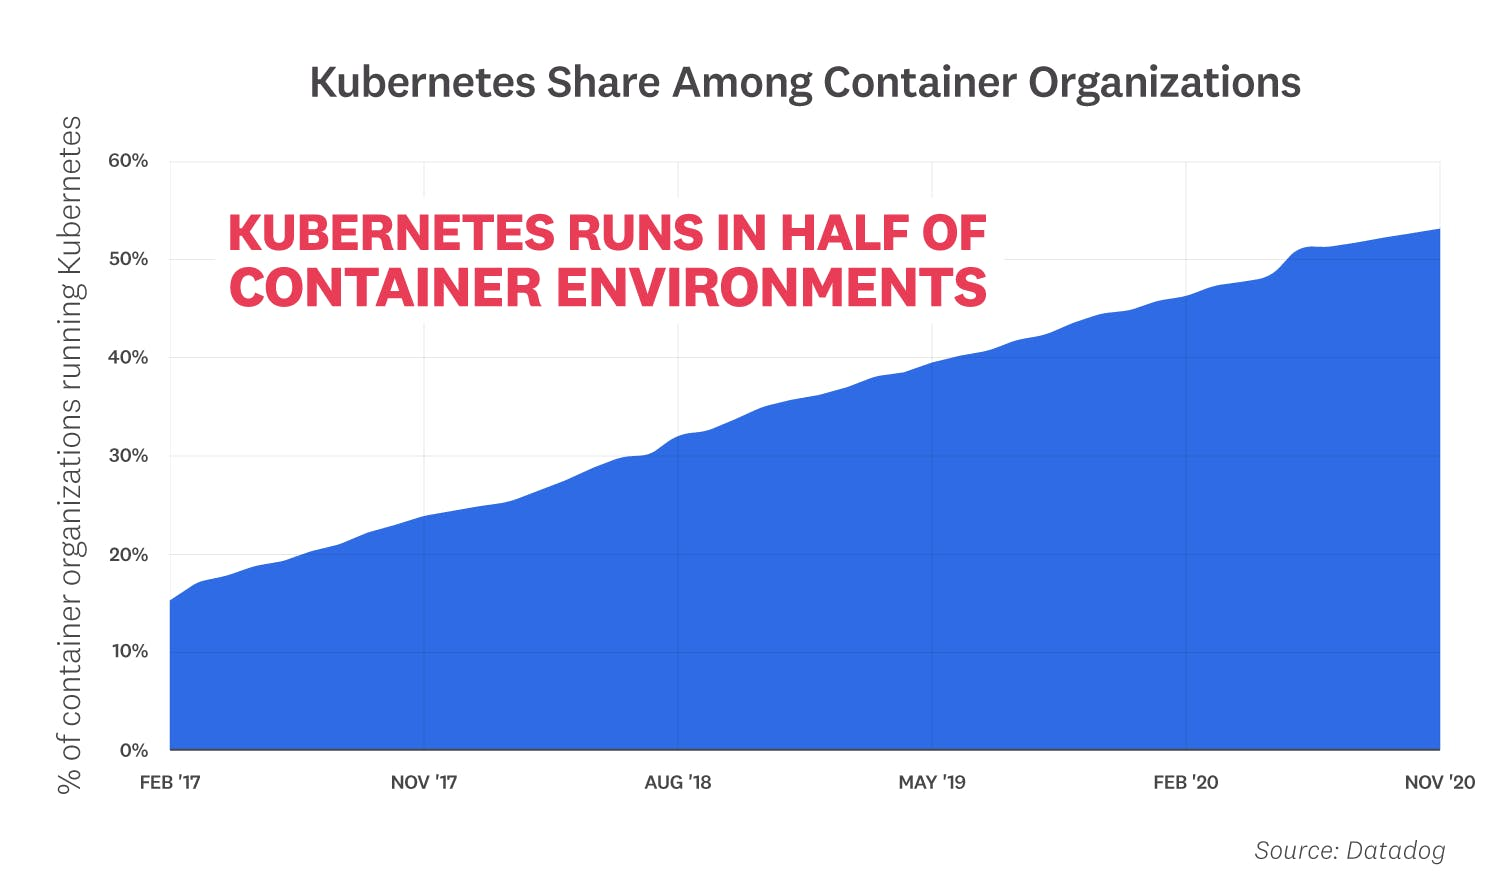 container-report-2020/2020-container-orchestration-report-FACT-1